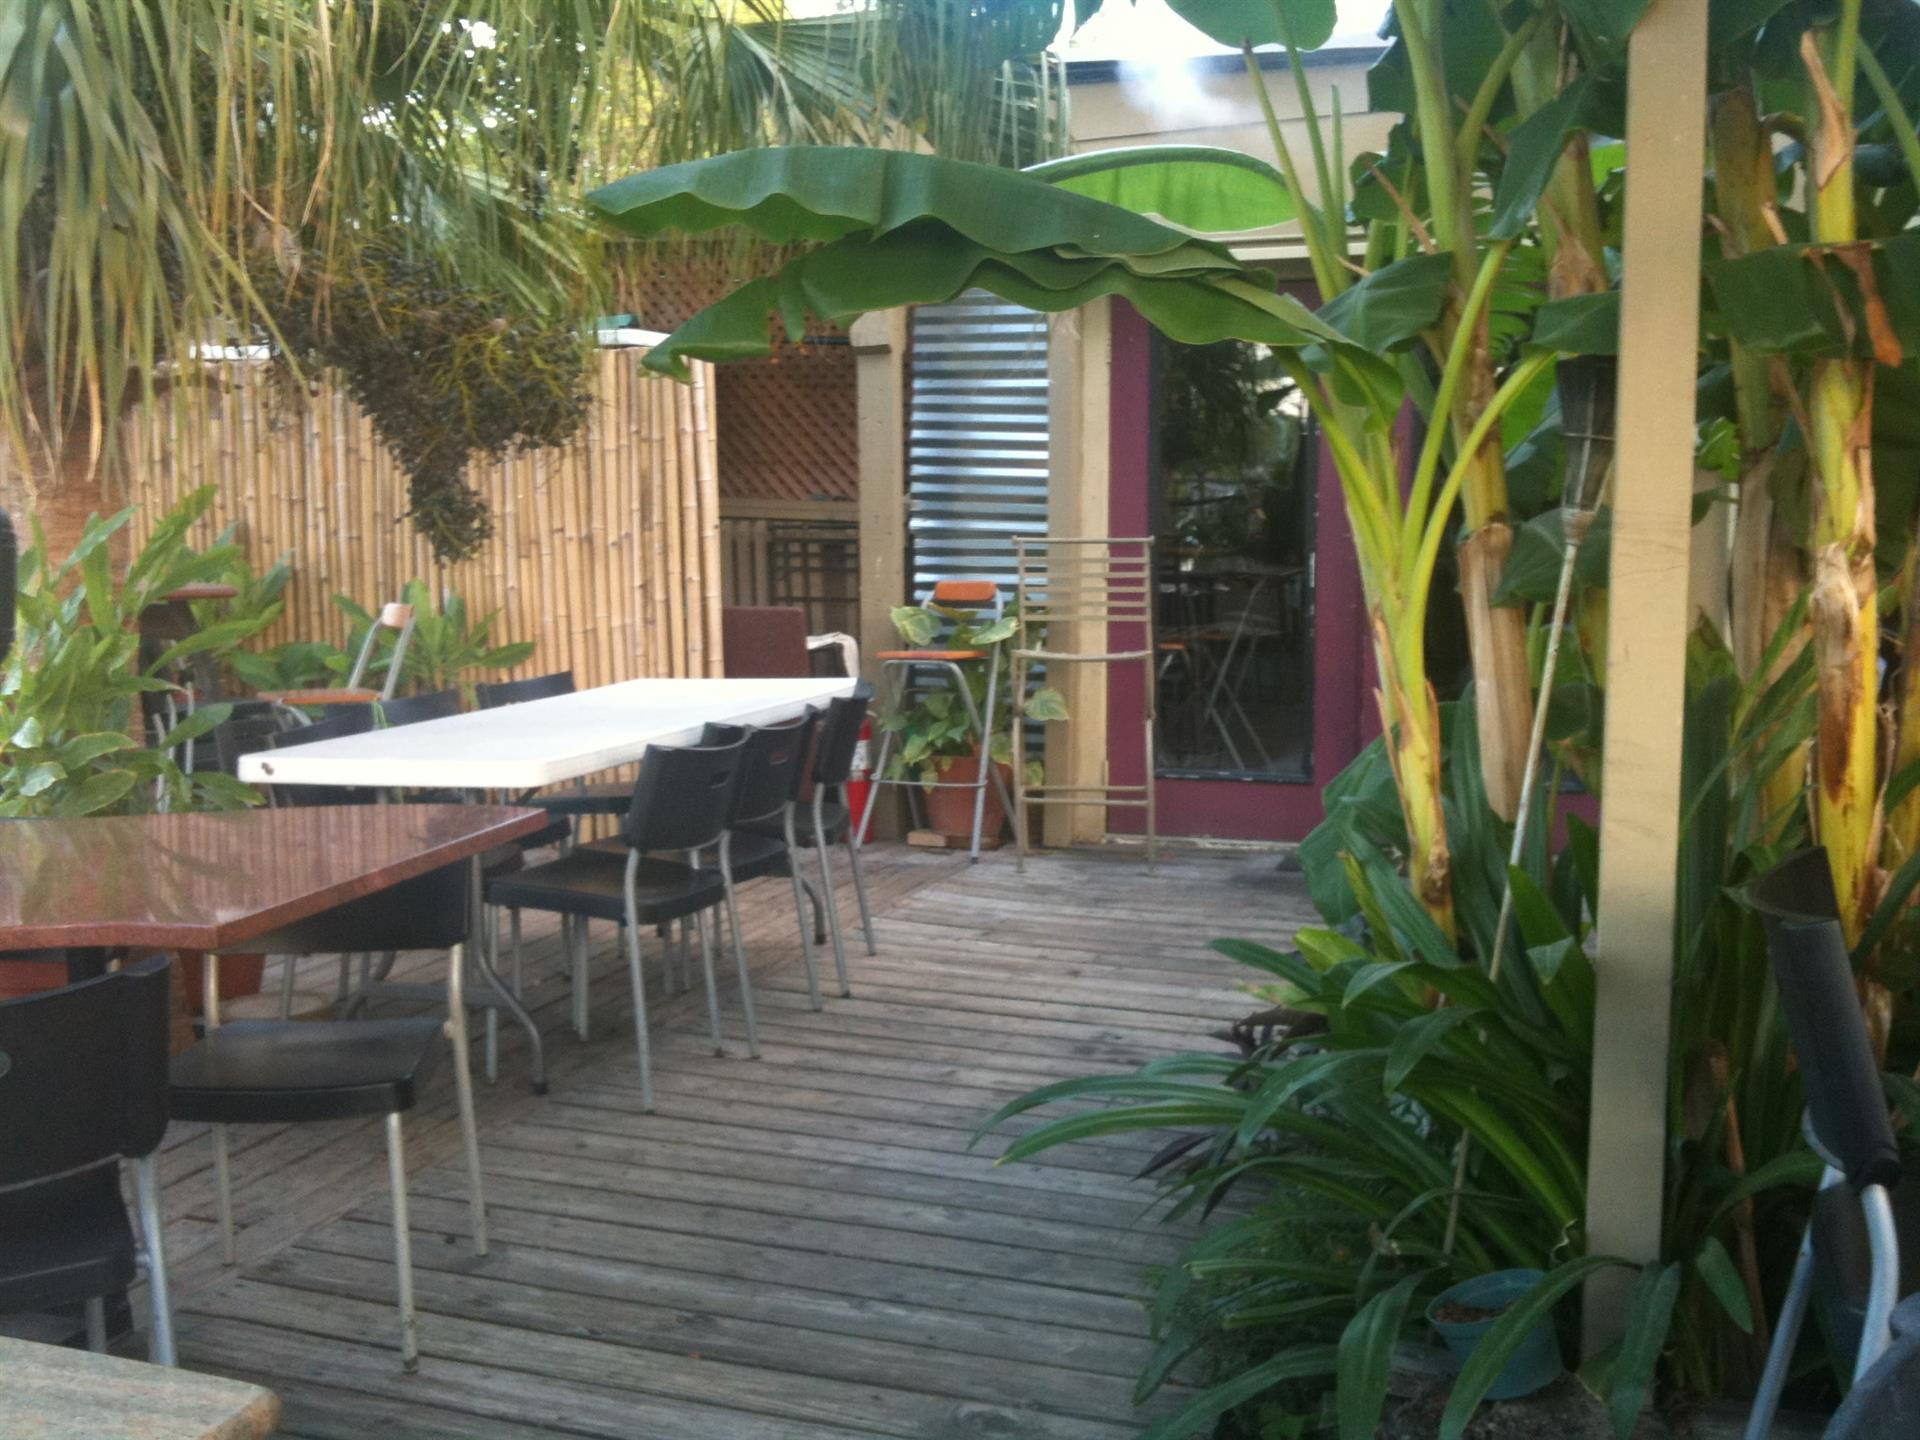 Outdoor deck with tables and large plants